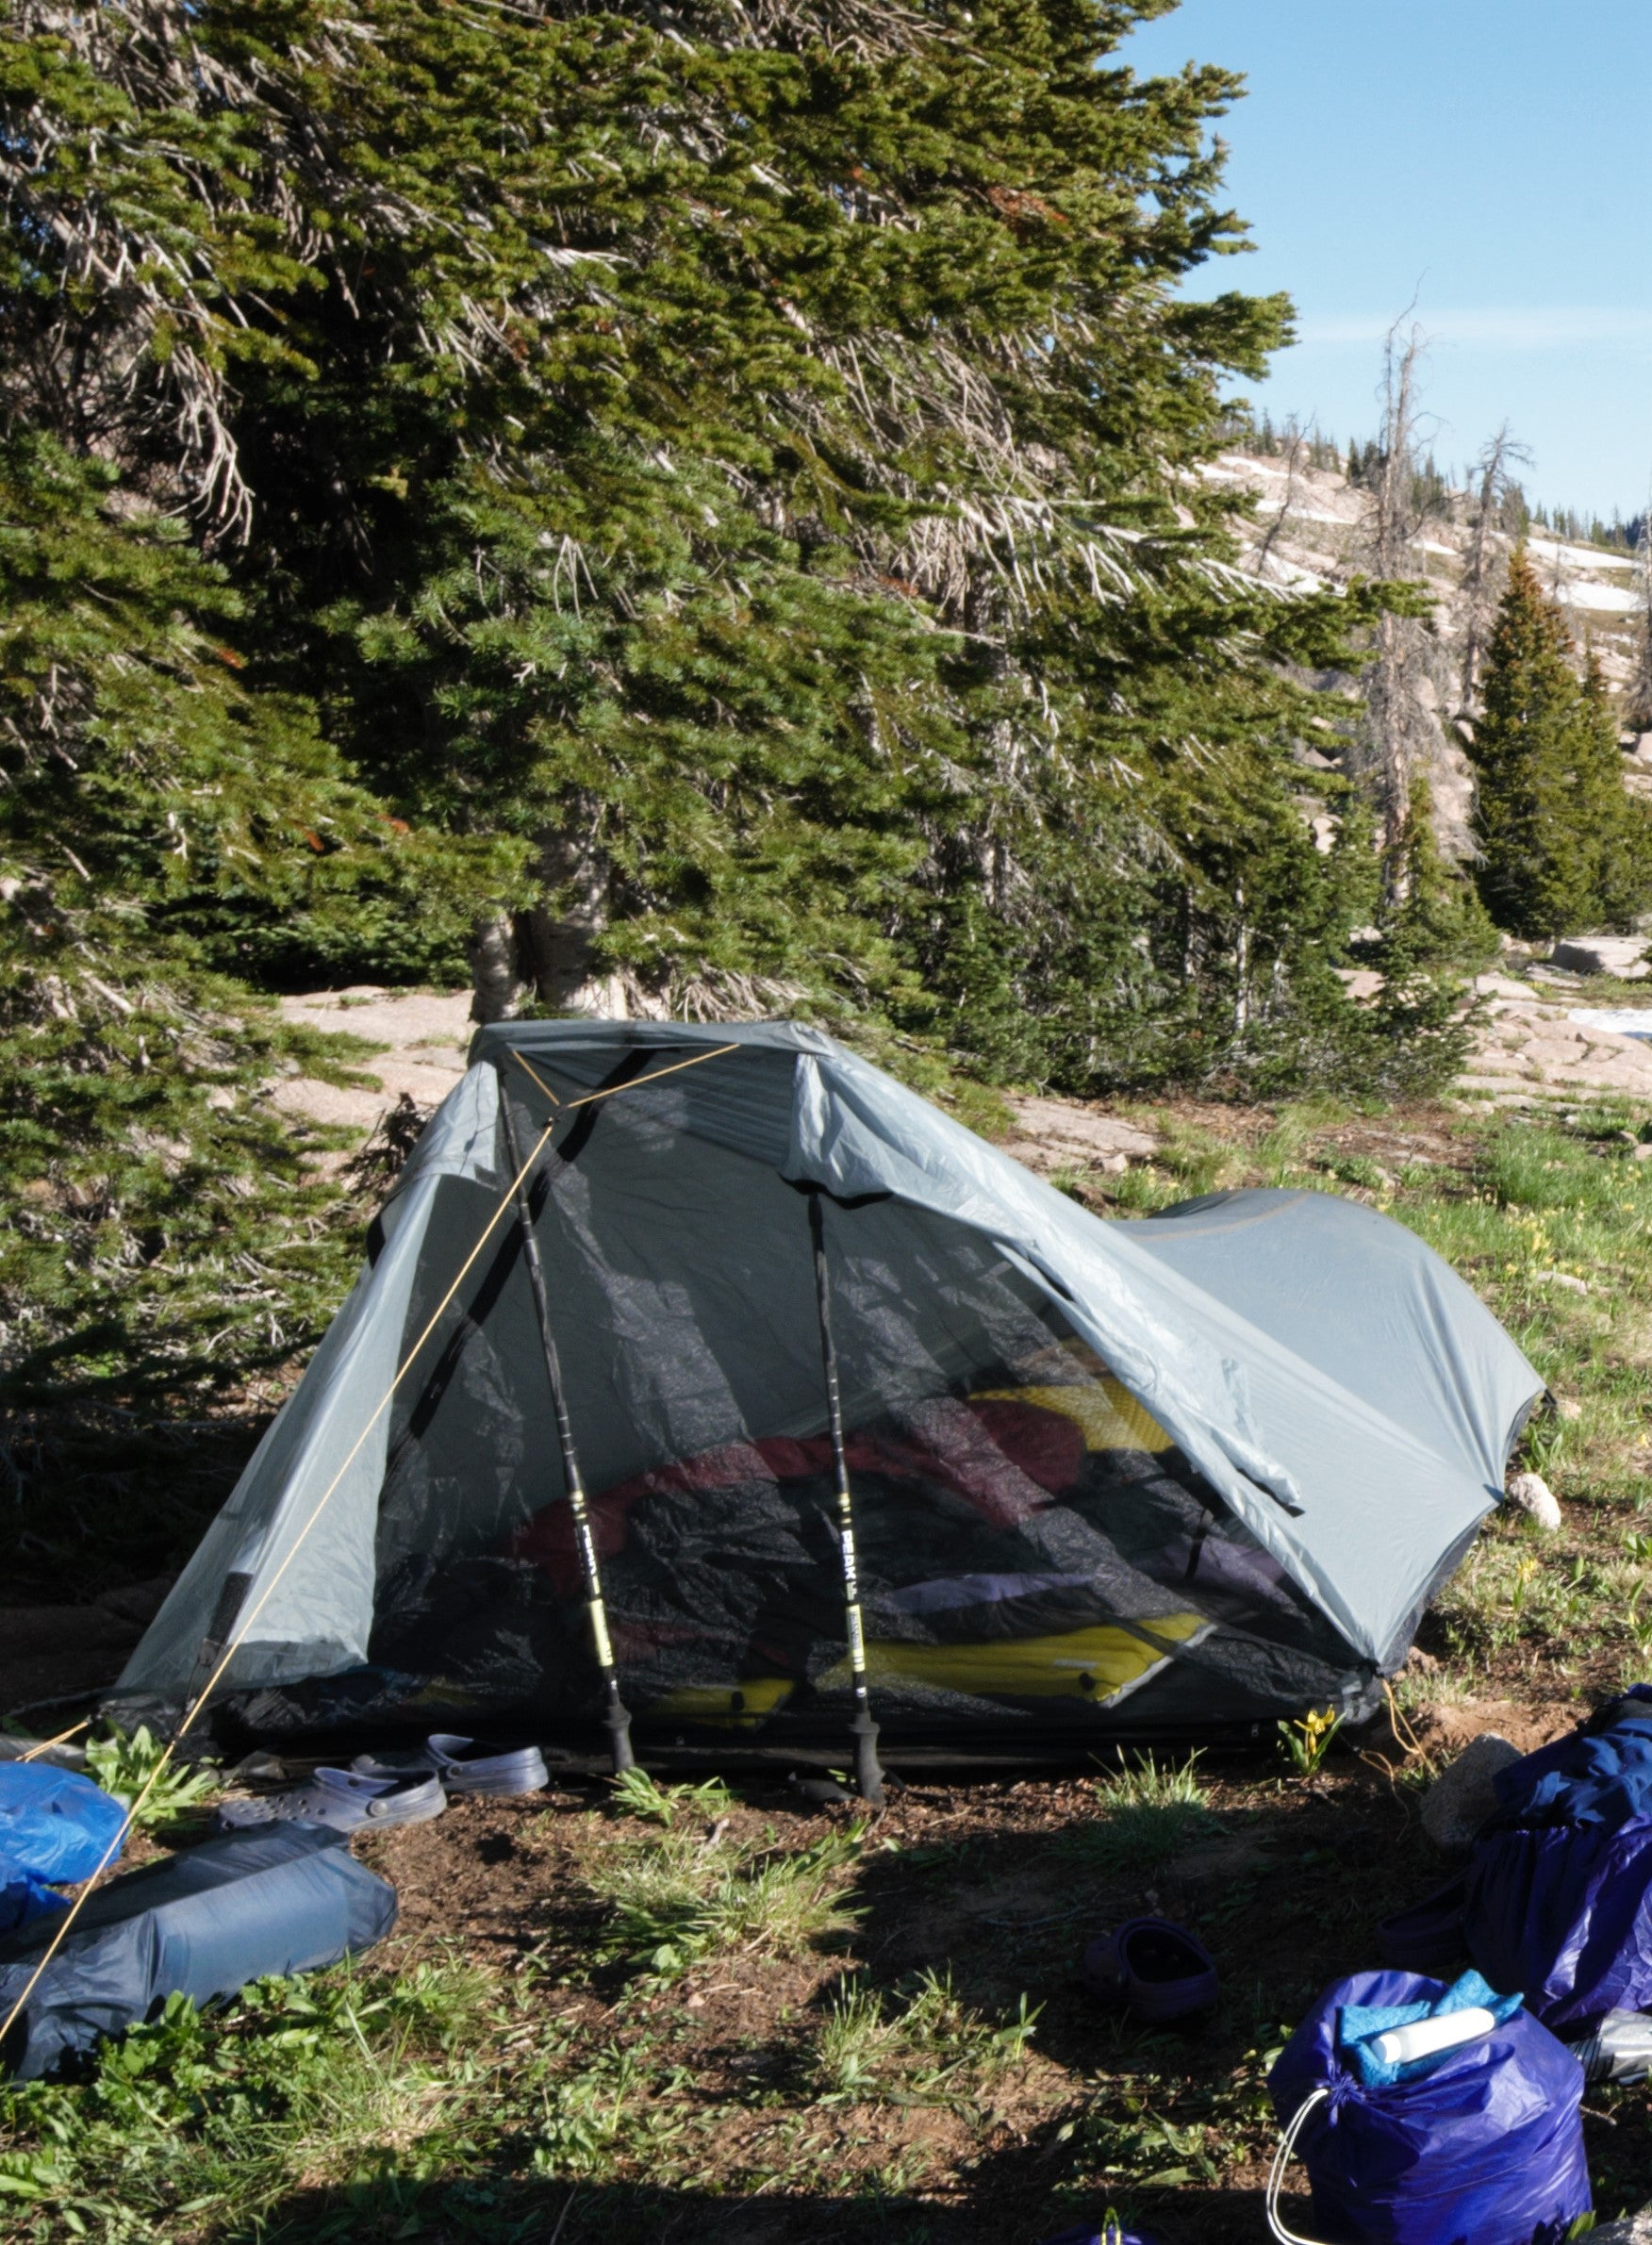 Tarptent Squall 2 & The Best Equipment for Lightweight Backpacking u2013 Supai Adventure Gear